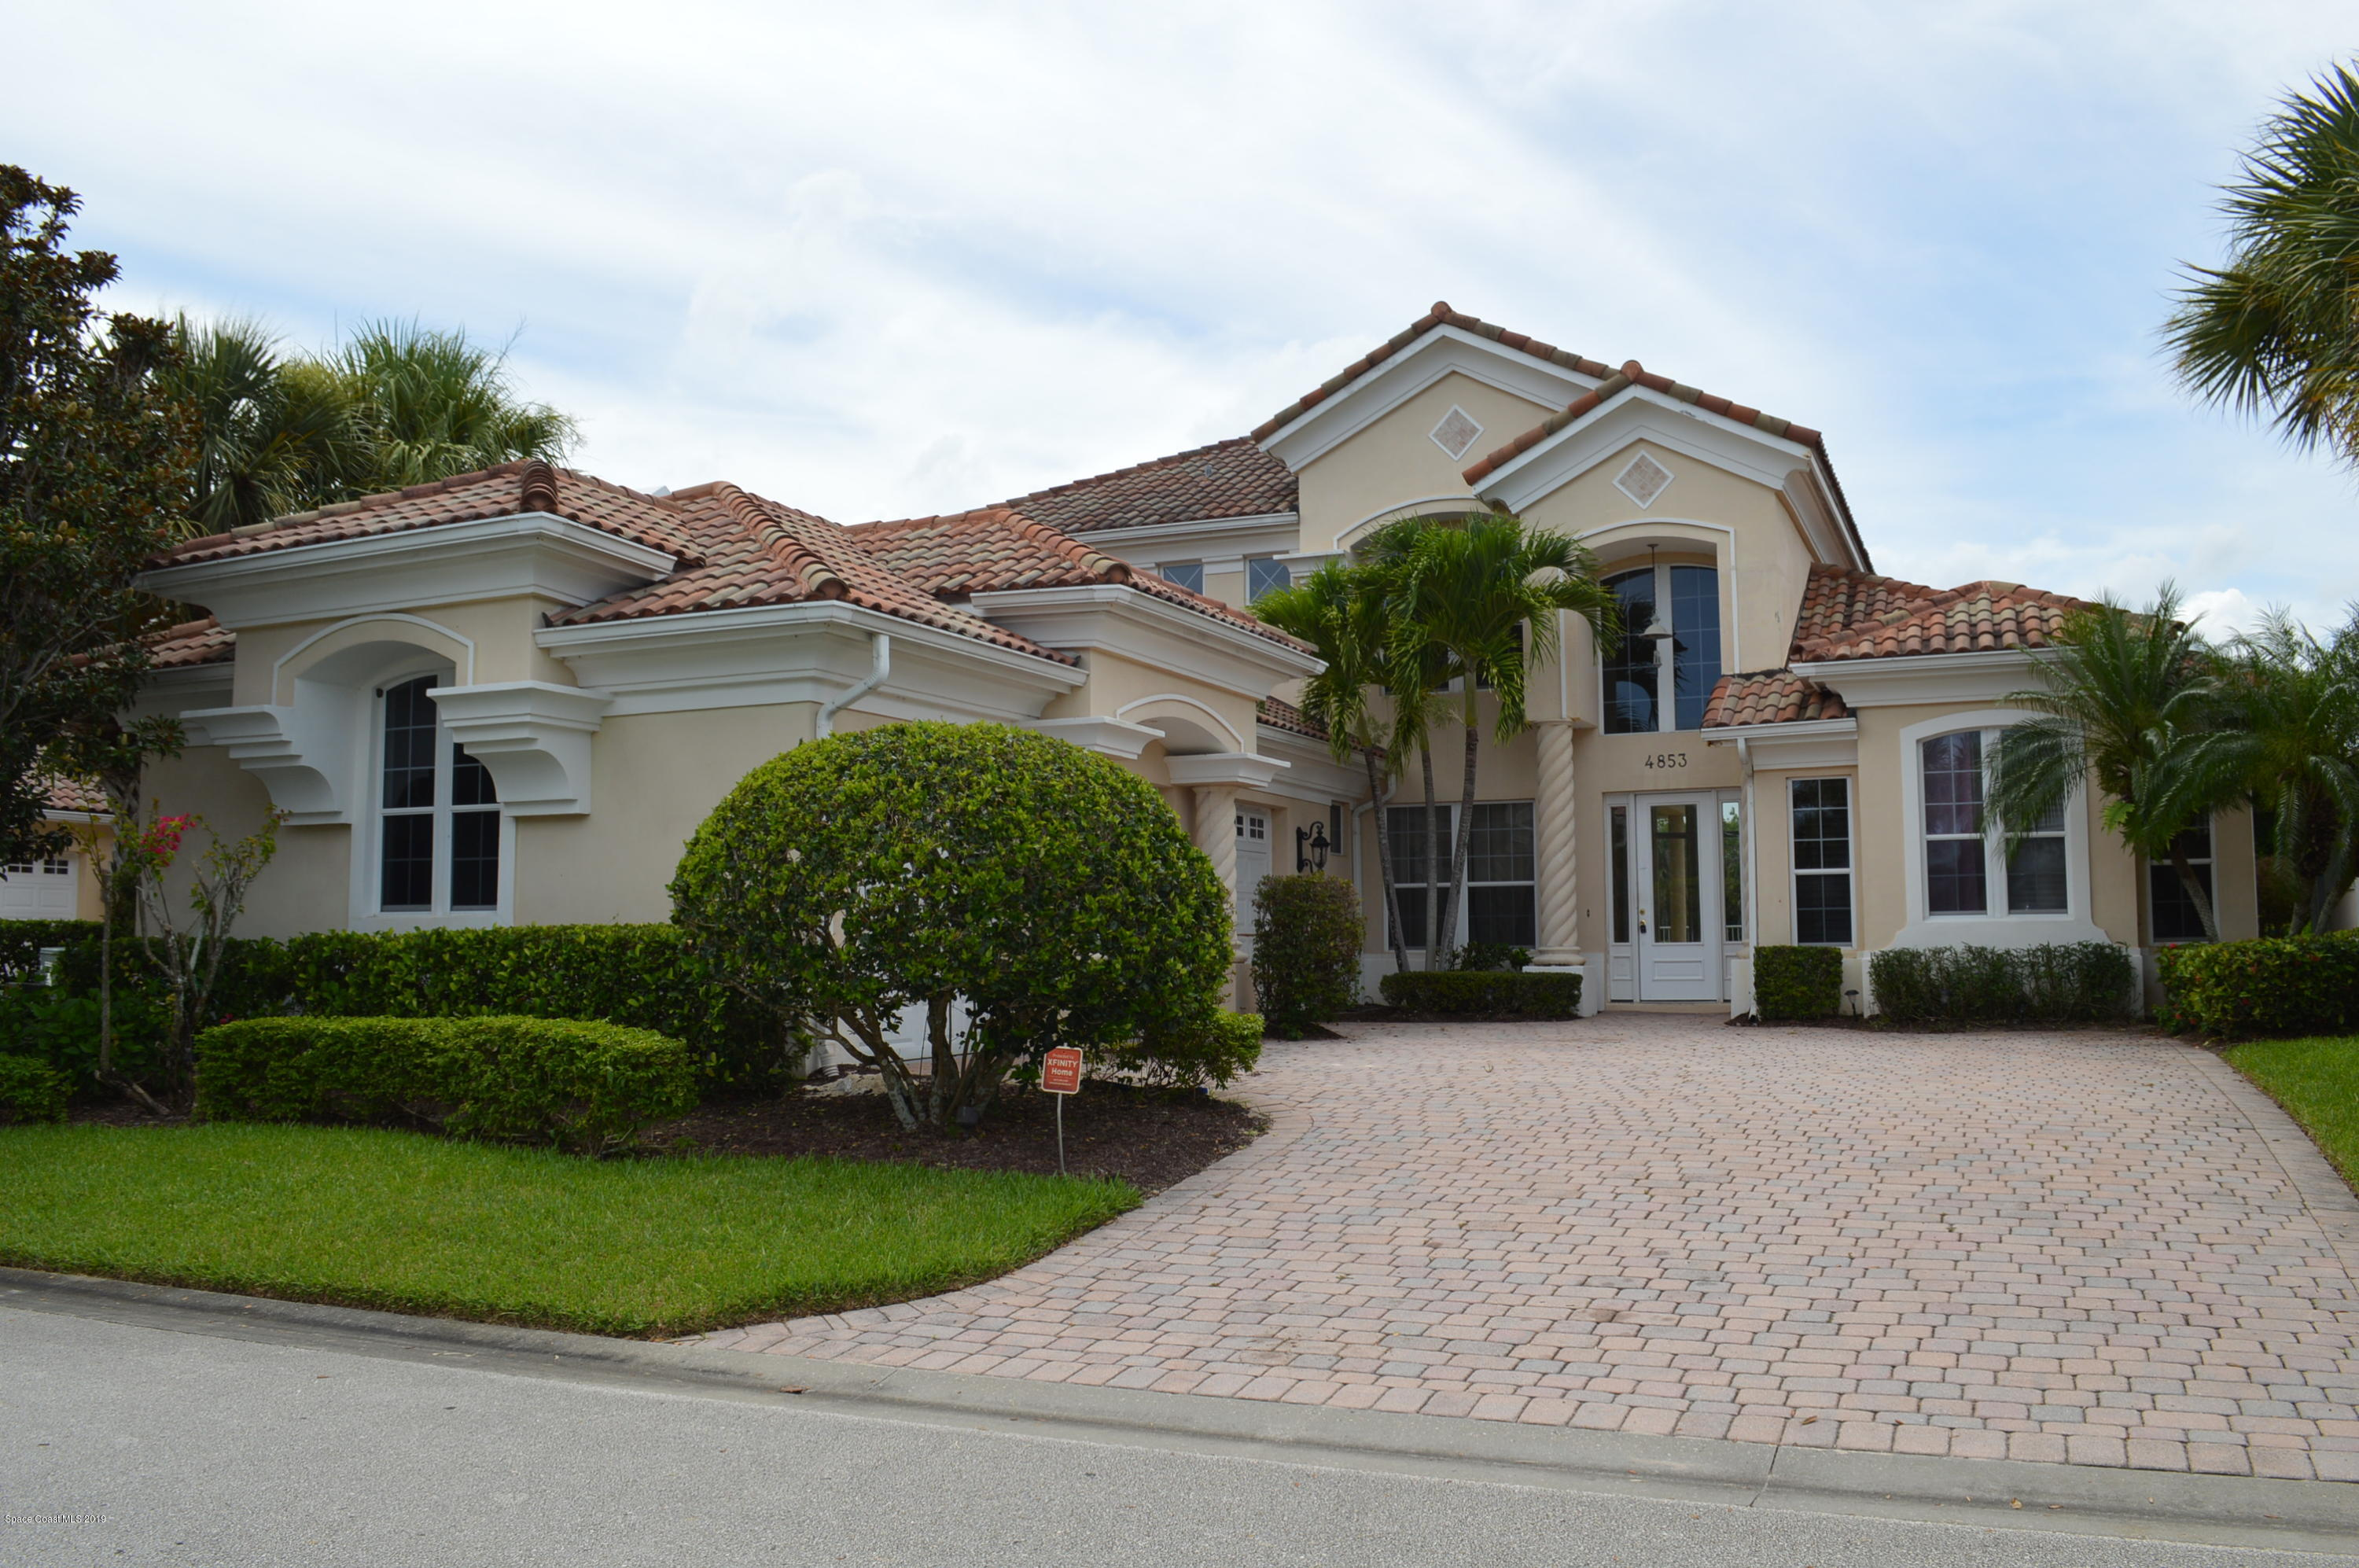 Single Family Homes for Sale at 4853 River Village Vero Beach, Florida 32967 United States